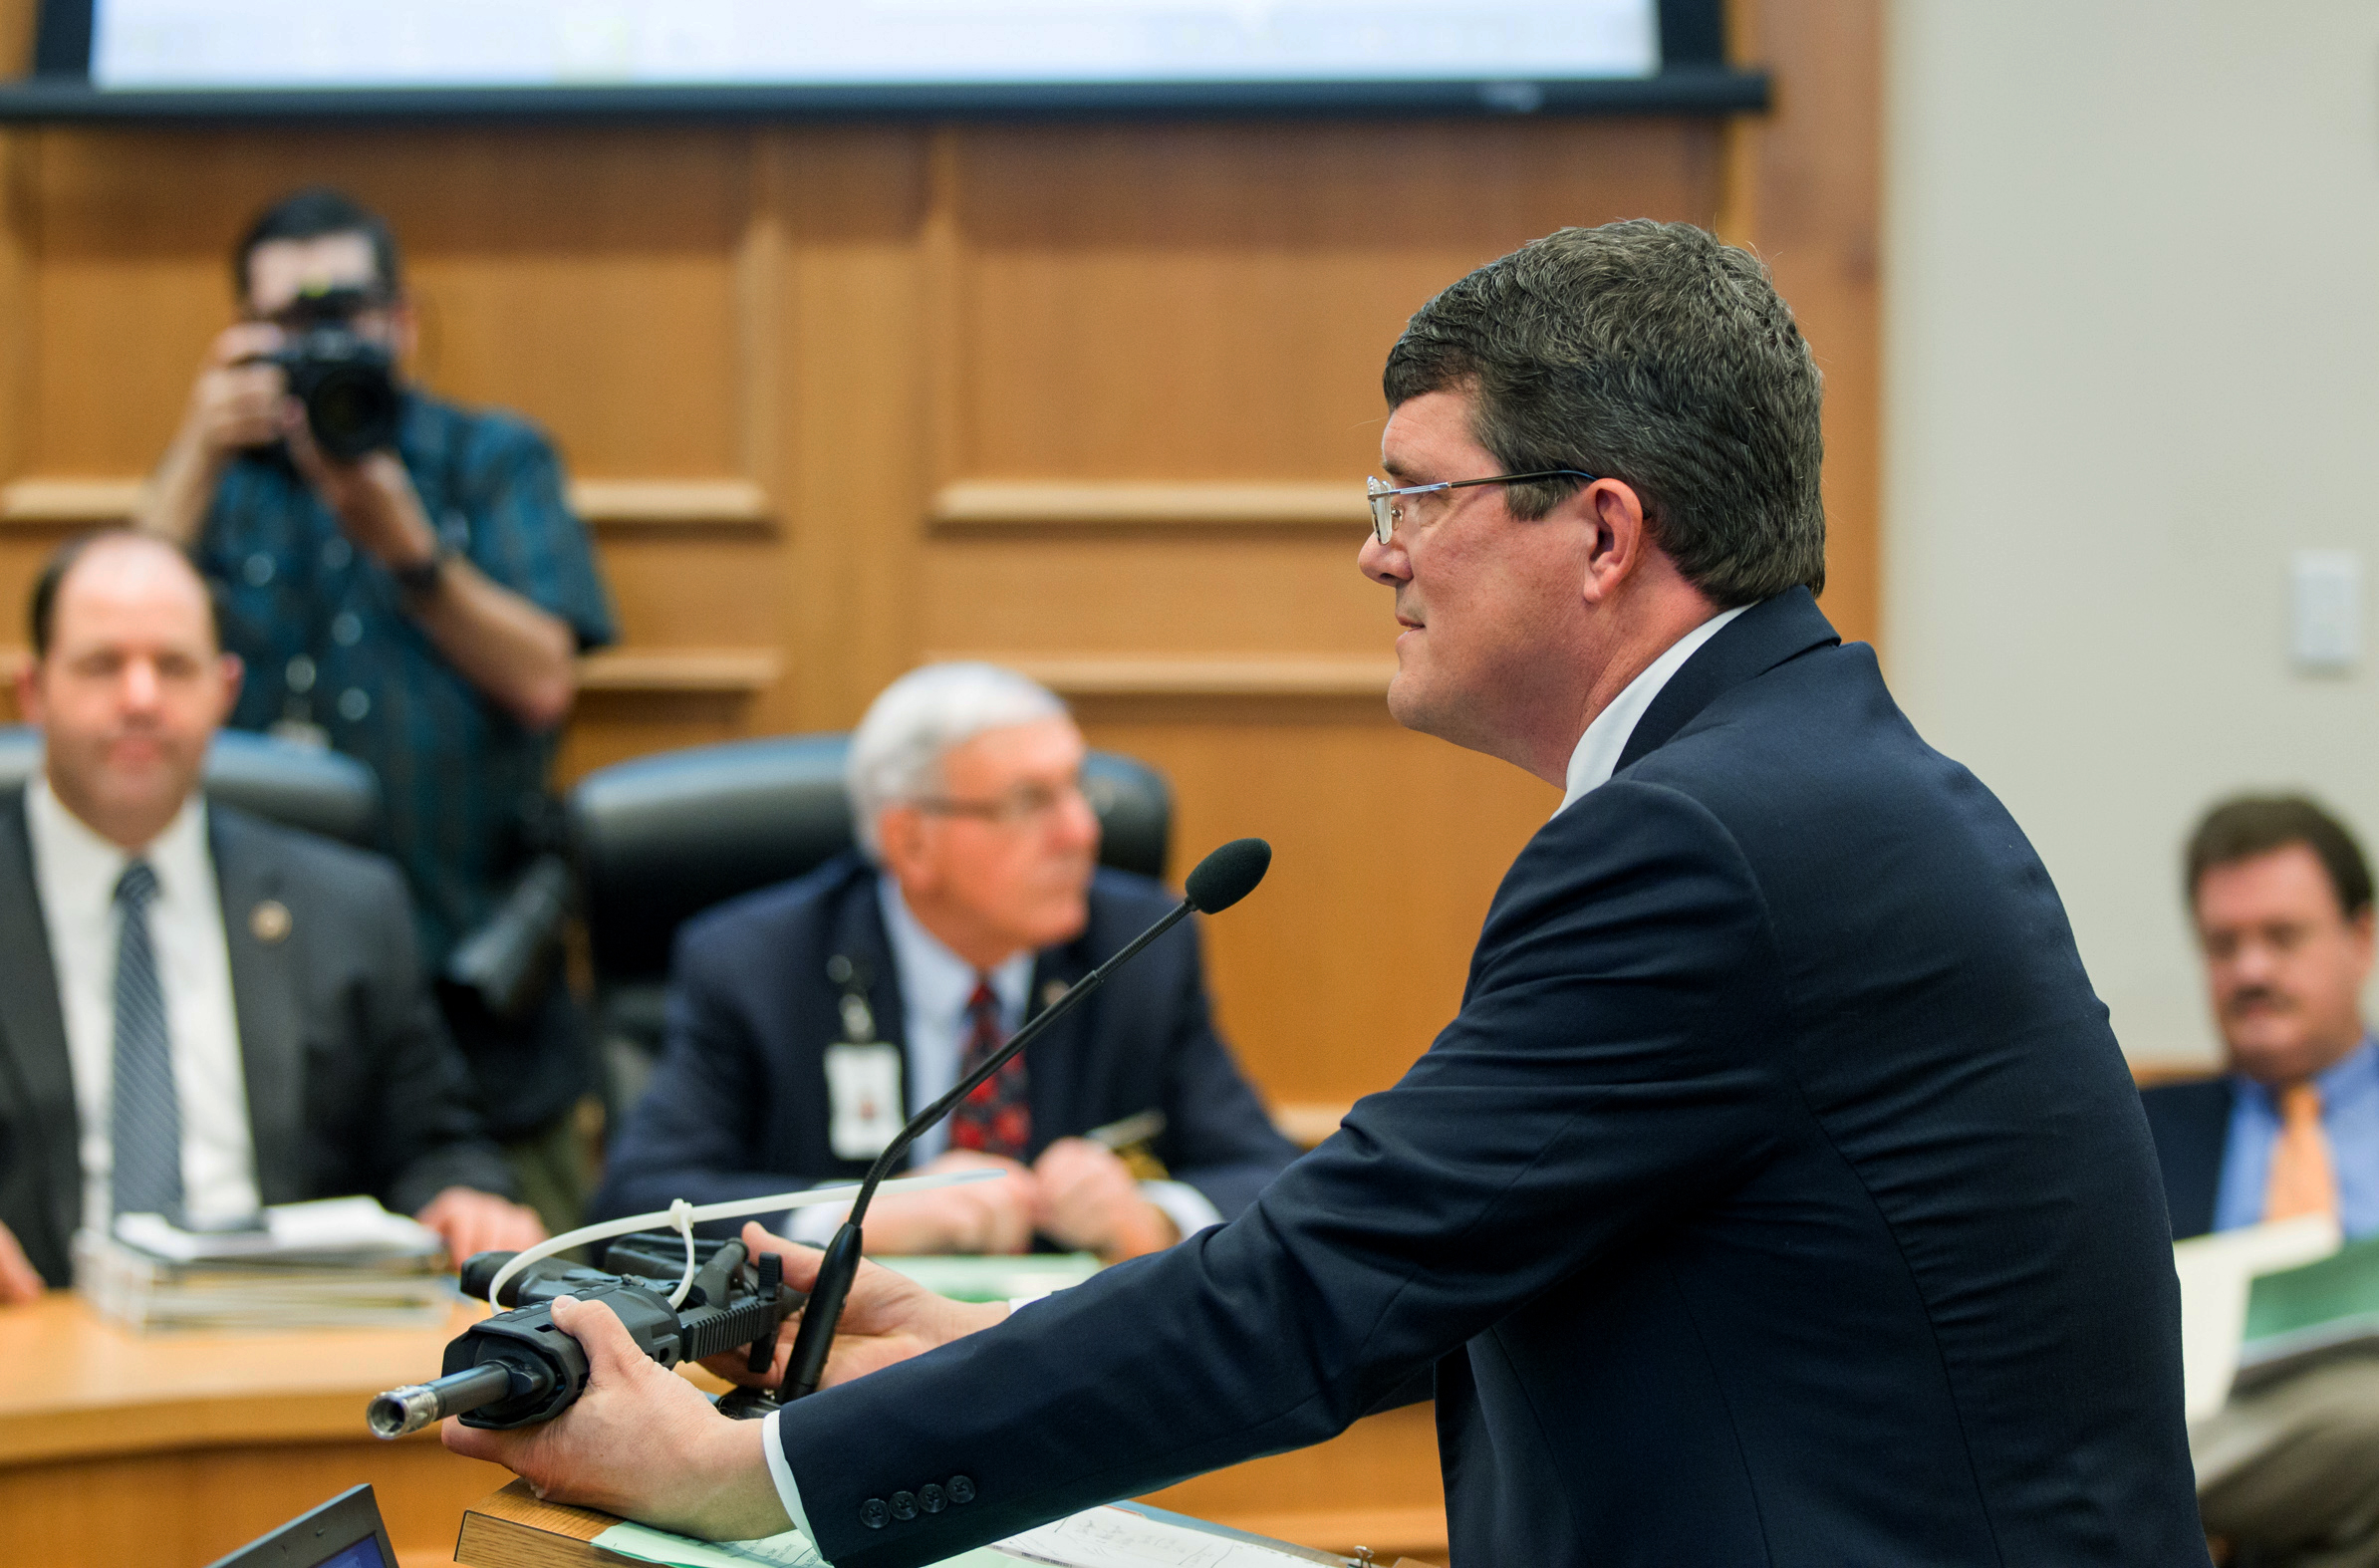 State Rep. Mike Stewart, D-Nashville, shows a gun he bought without a background check to the House Civil Justice subcommittee in Nashville, March 23, 2016.